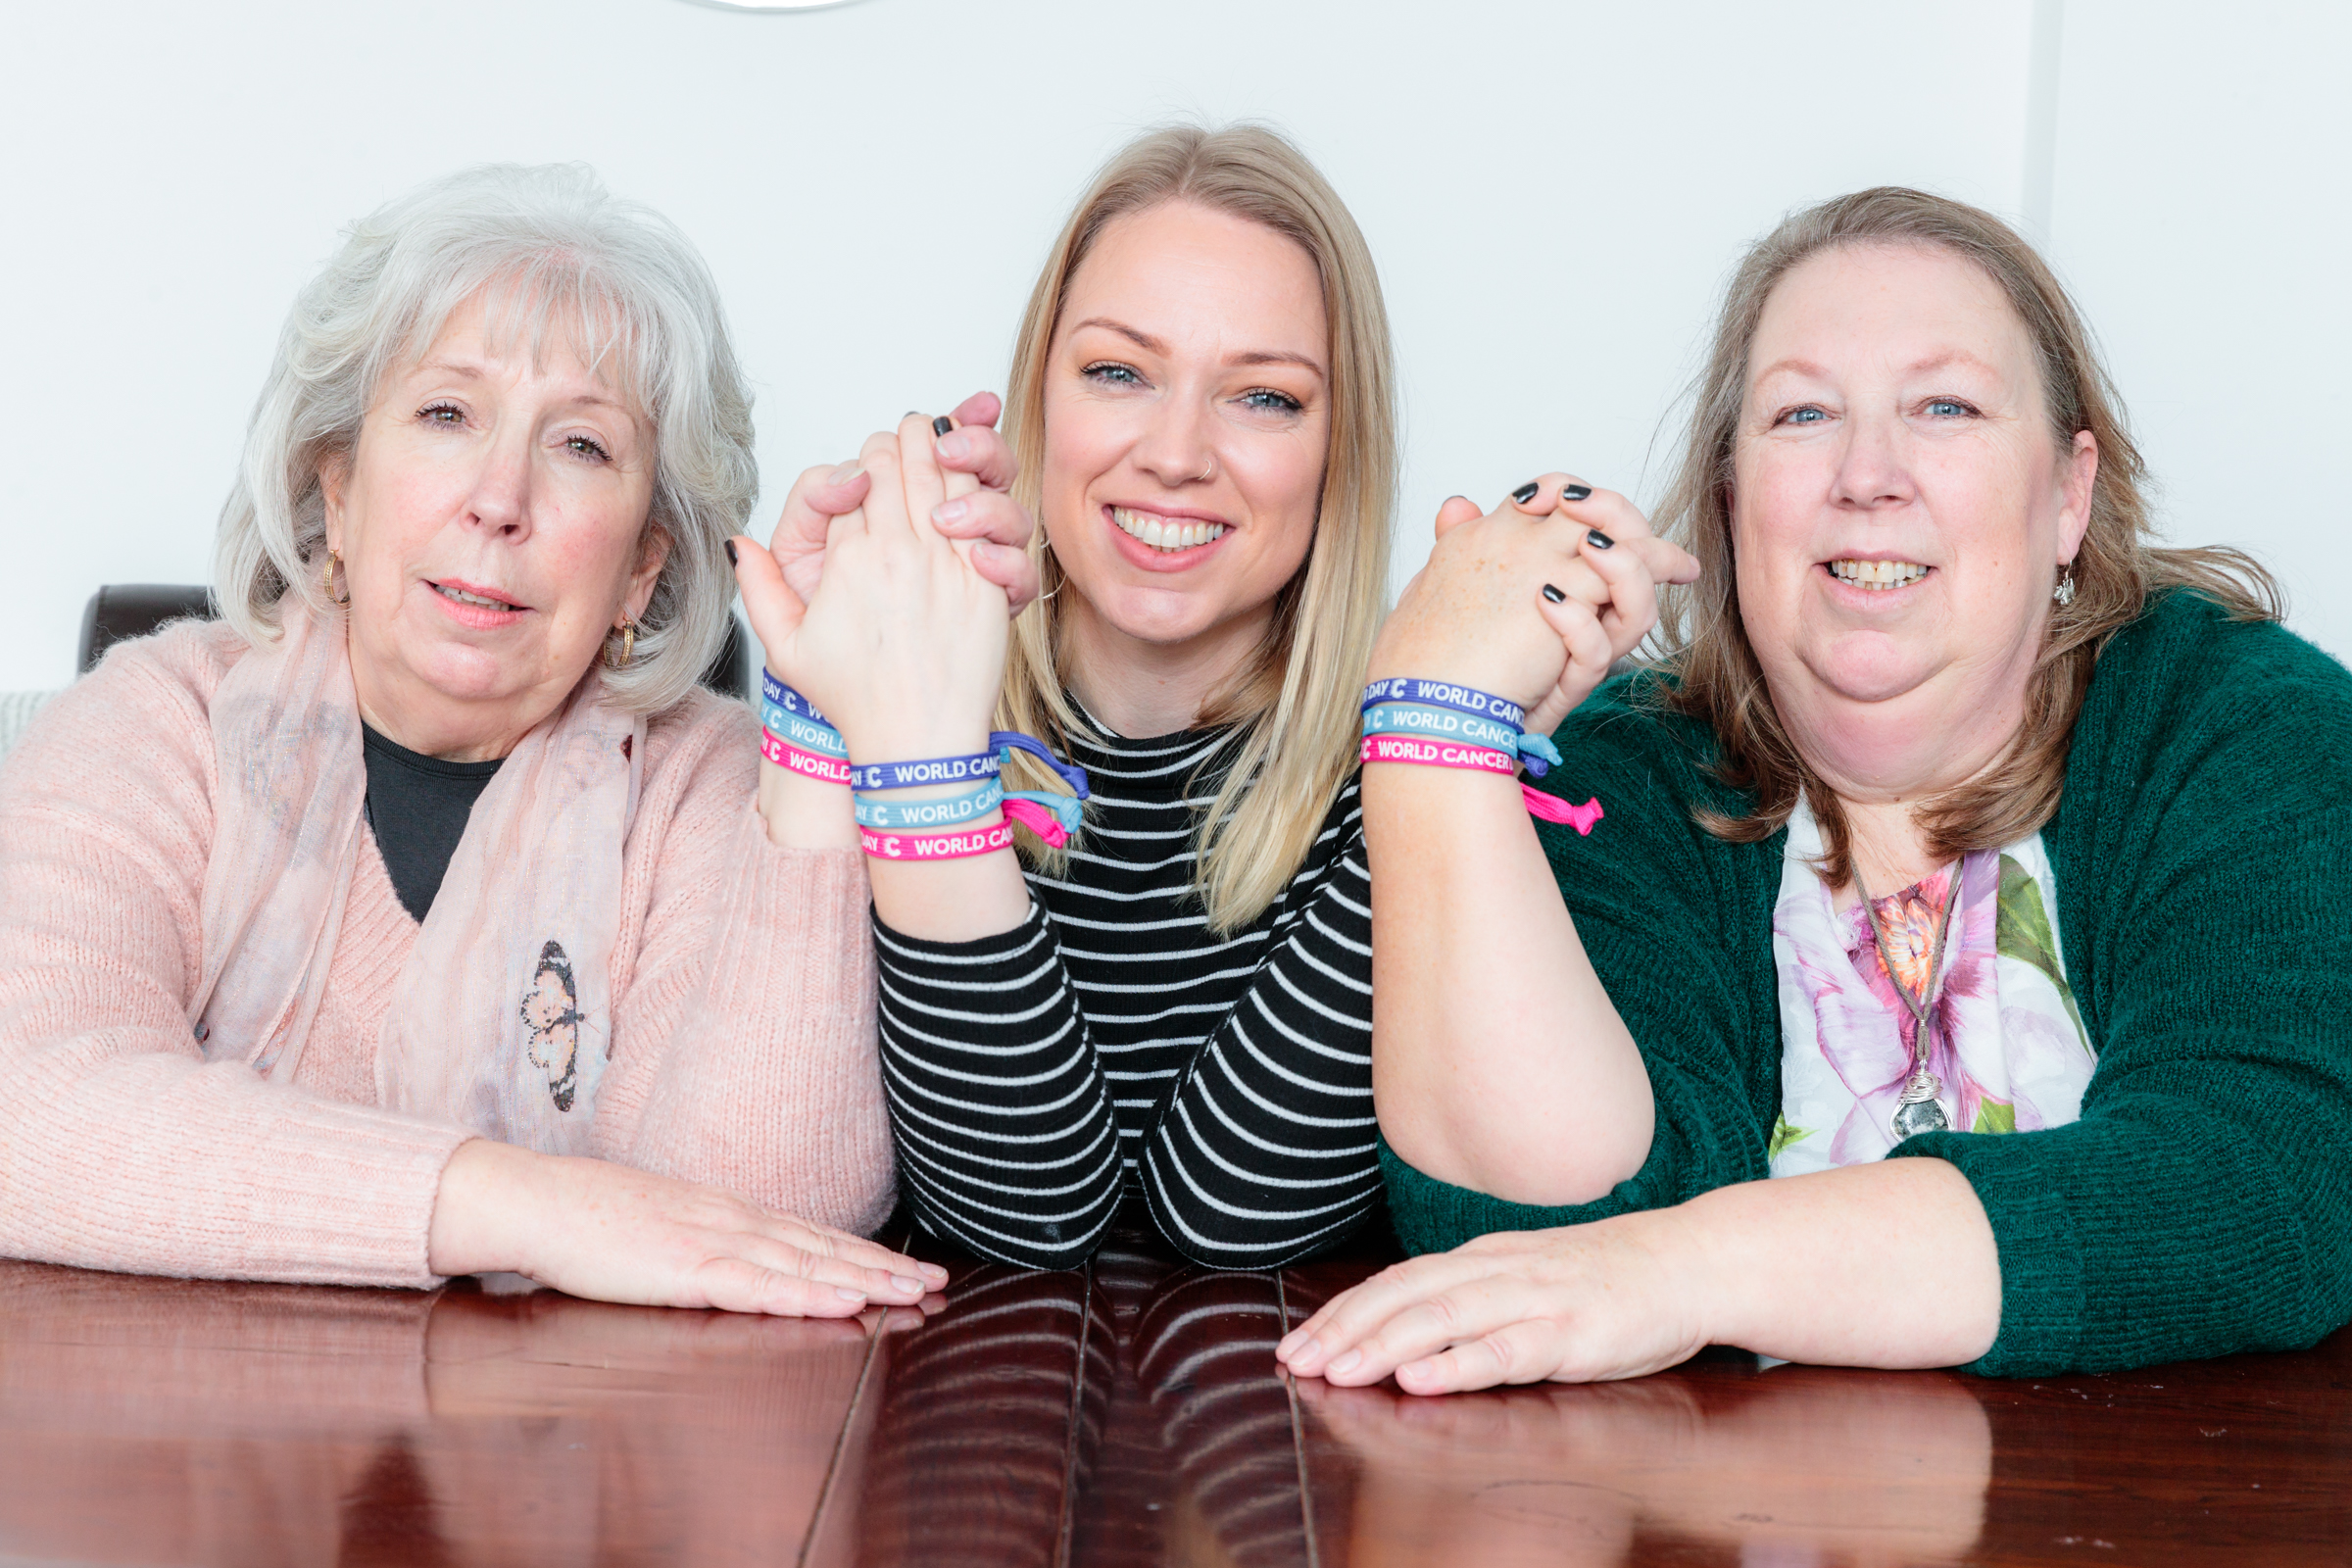 L-R Gail, Becky and Debbie wear Unity Bands to support World Cancer Day